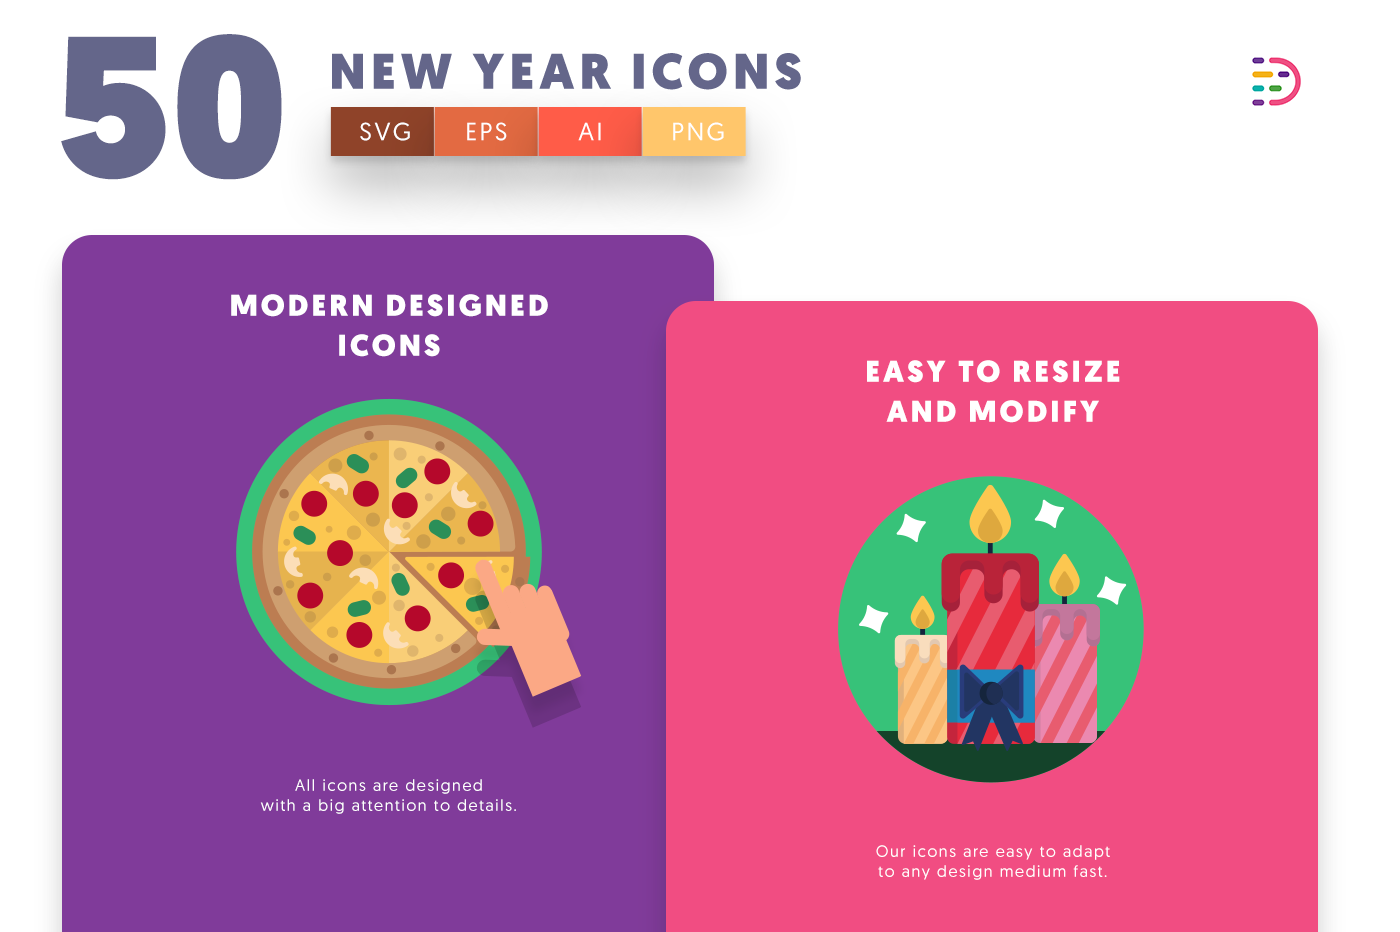 New Year icons png/svg/eps